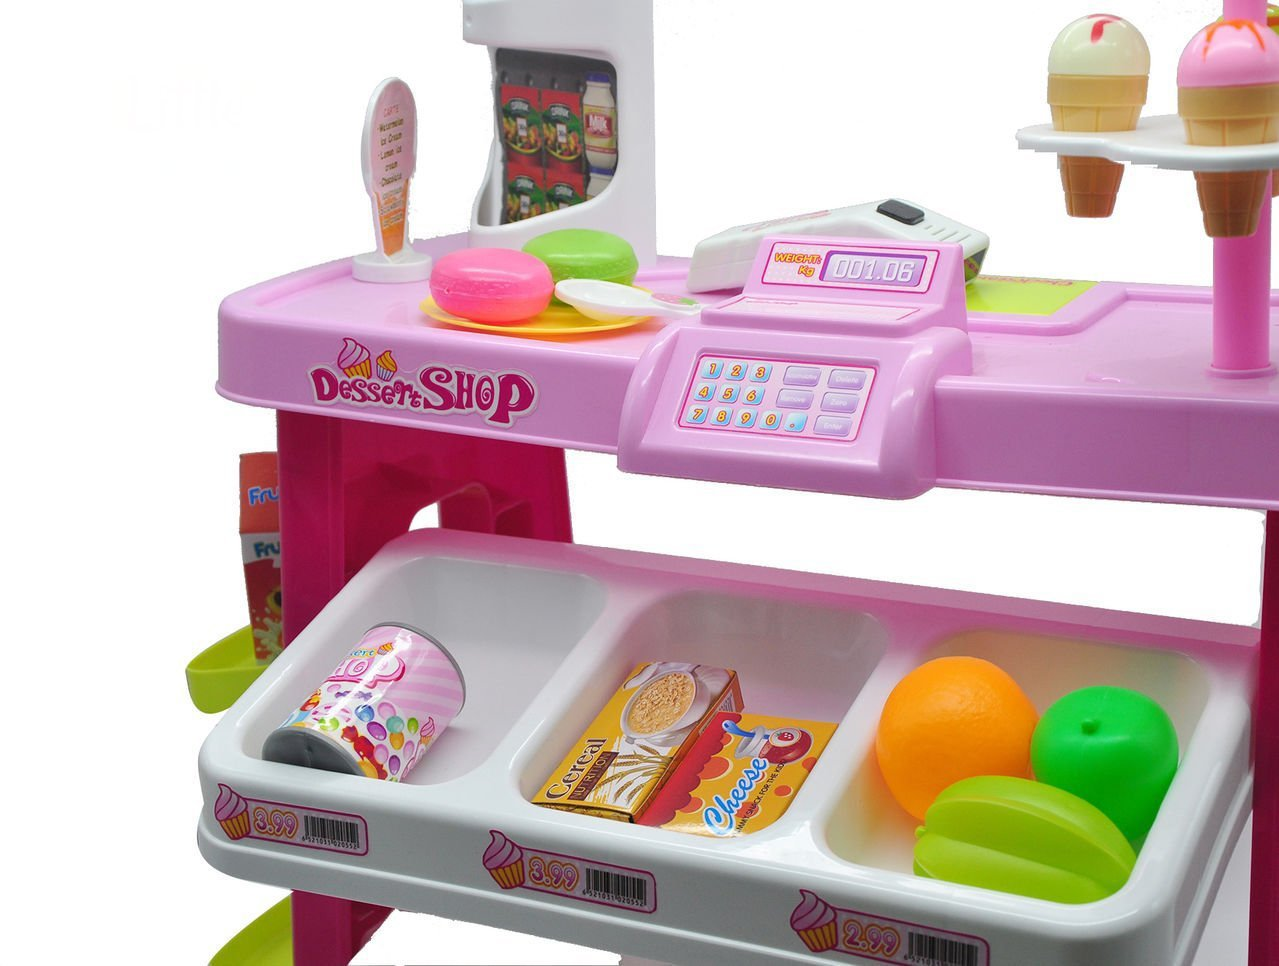 AMPERSAND SHOPS Specialty Dessert Shop Stand Playset with Shelves and Various Treats